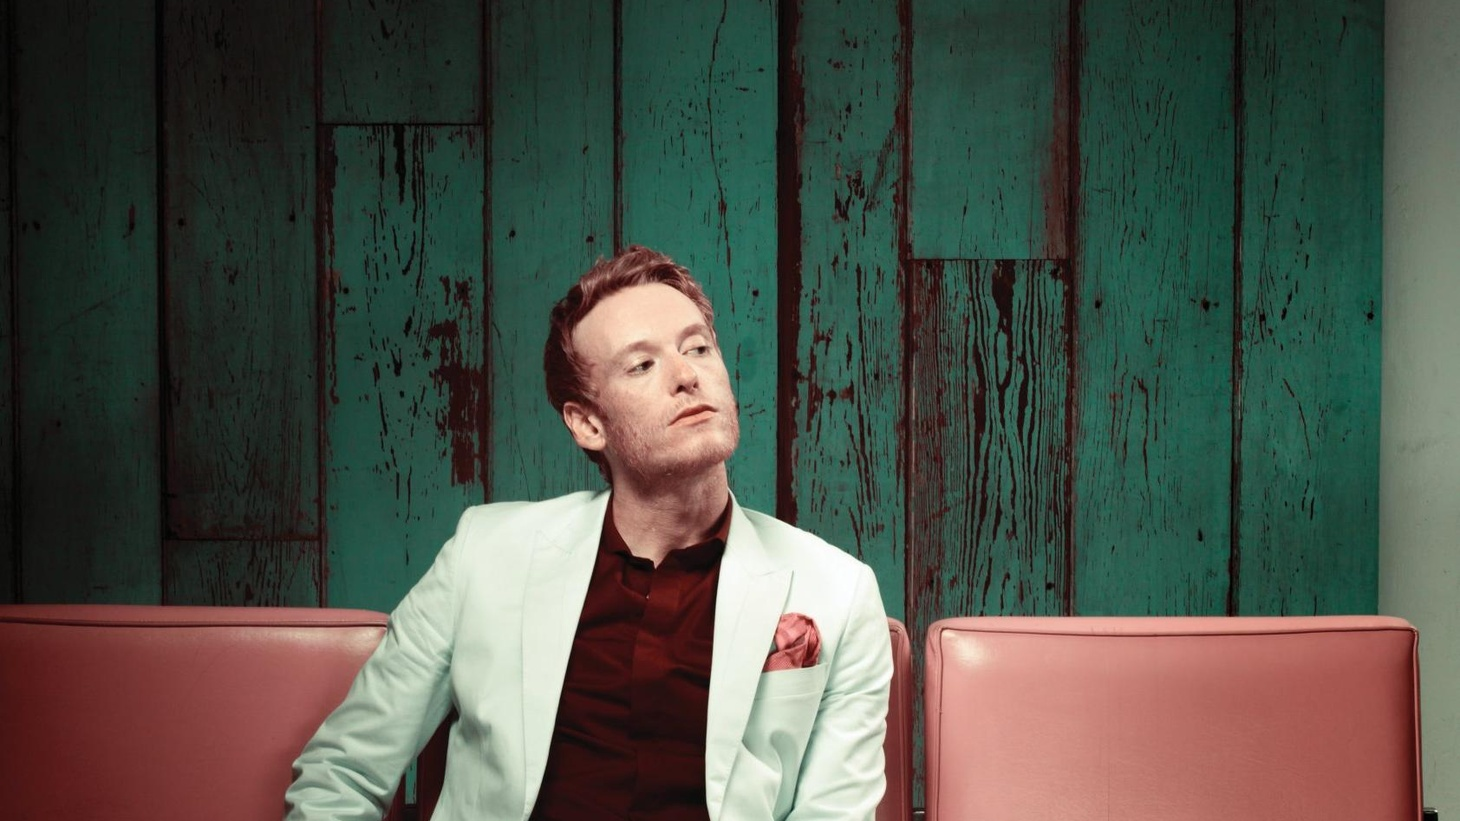 I first became aware of Teddy Thompson while he was still a teenager. His father Richard was a frequent guest on Morning Becomes Eclectic in the 90s, sometimes walking with guitar in hand from his house on nearby 20th Street down to our basement studios for live on-air sessions.